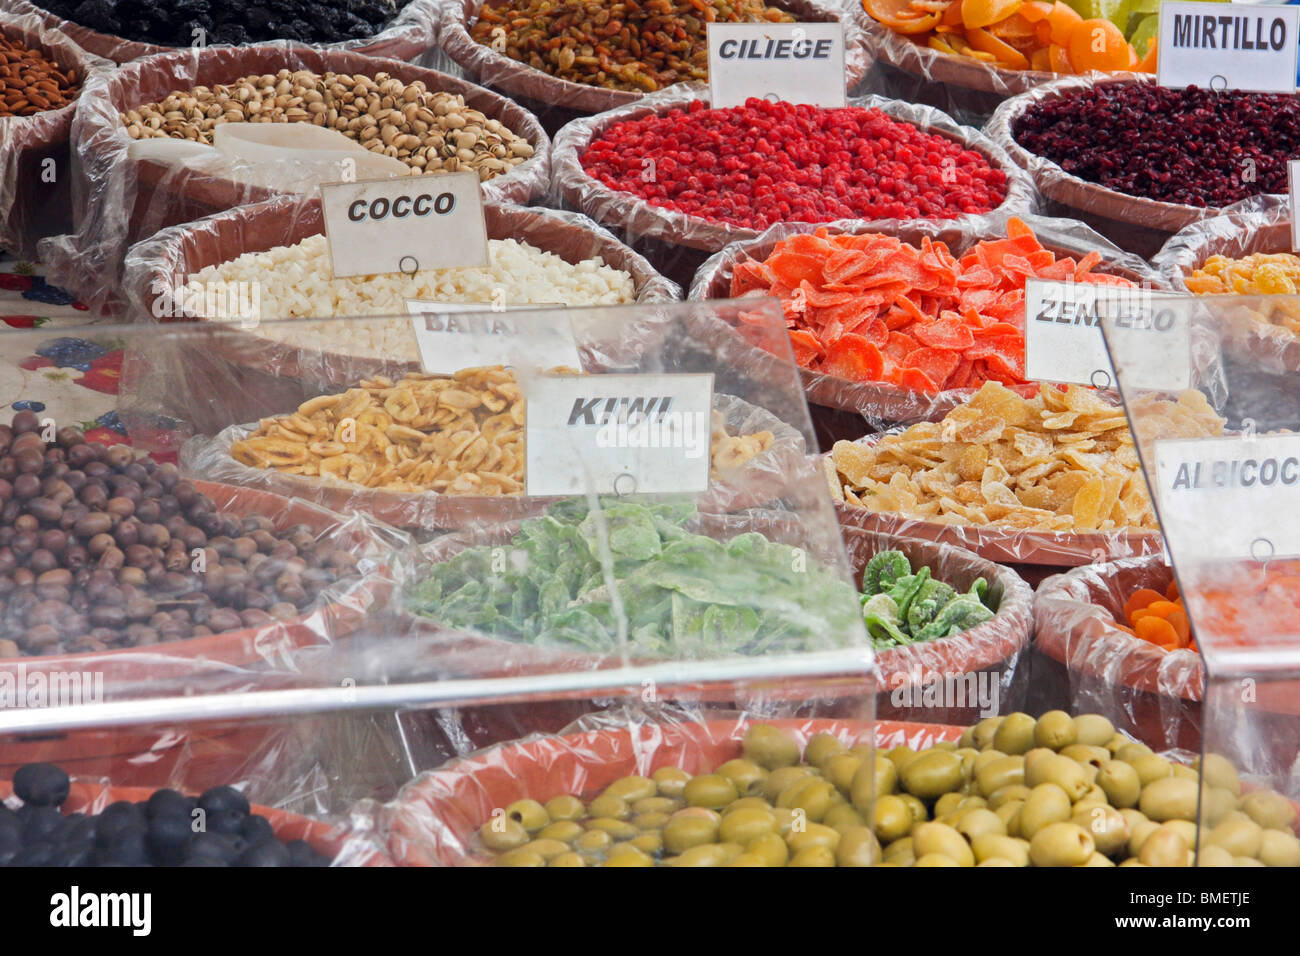 Italy, Lake Maggiore, Dried fruit stall - Stock Image